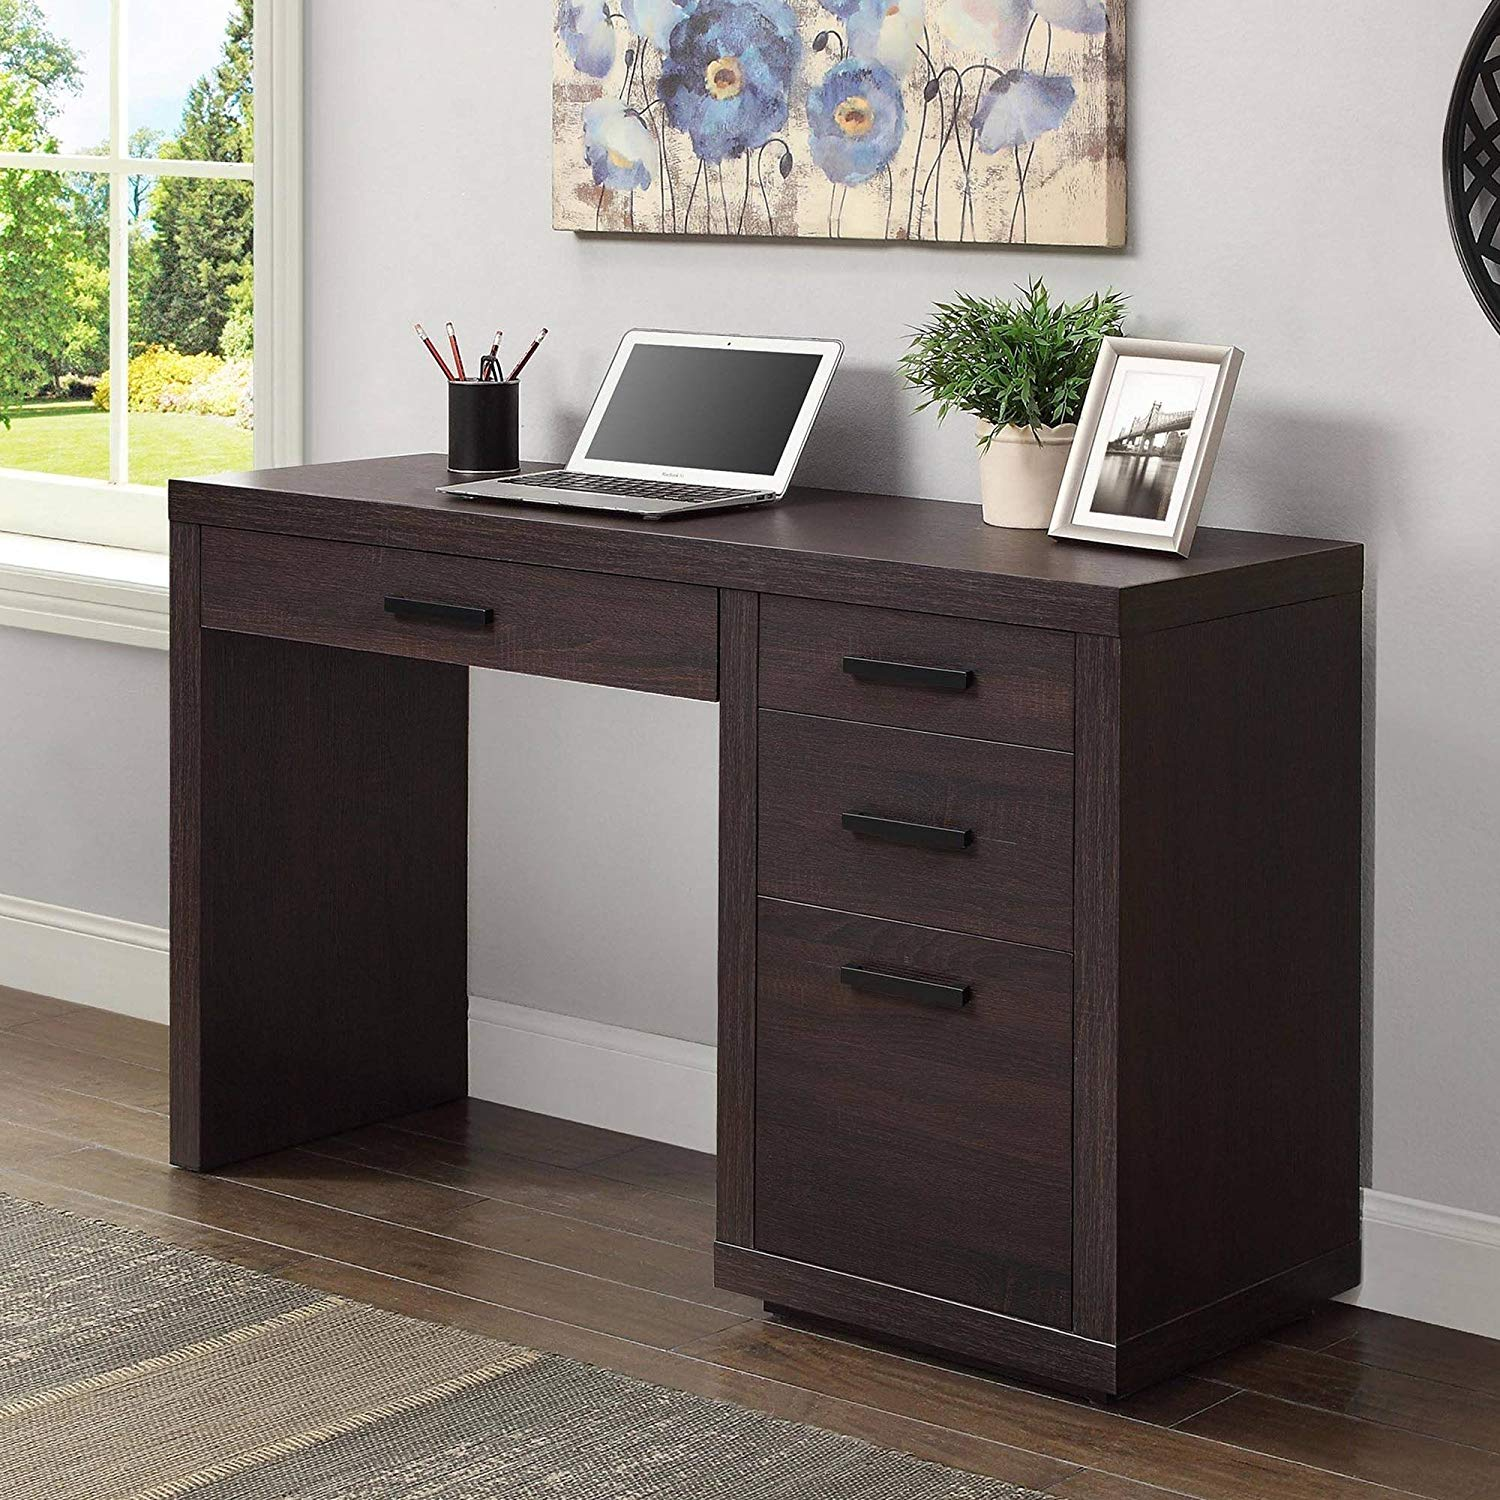 Writing Desk, Espresso Finish, 3 Drawers, Metal Hardware, Black Powder Coated Finish, Classic Style, Contemporary, Office, Bundle with Our Expert Guide with Tips for Home Arrangement